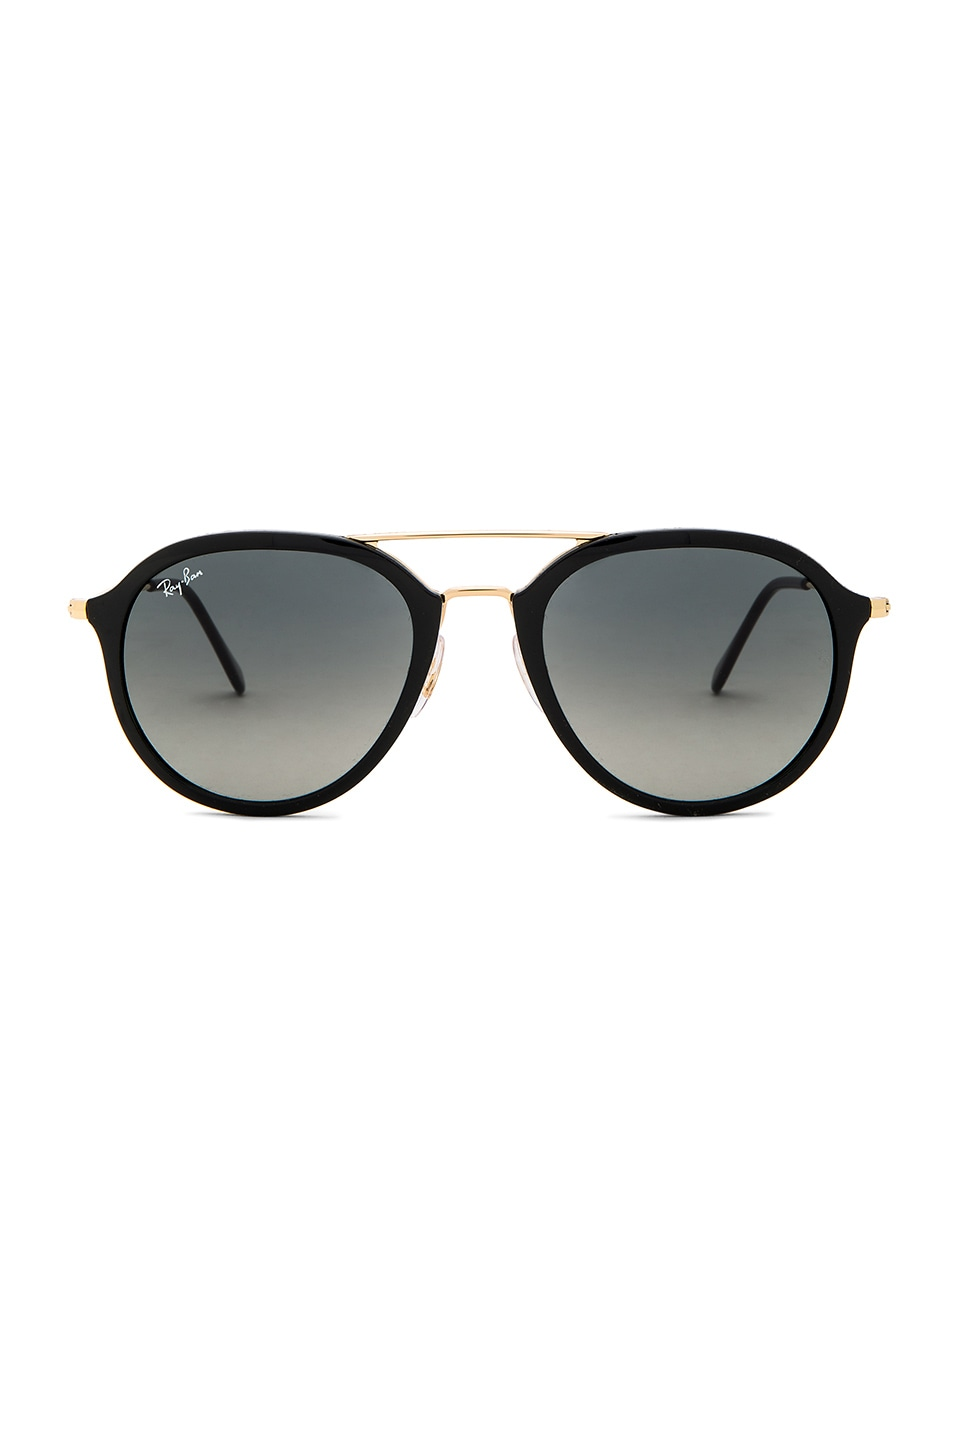 Ray-Ban RB4253 in Black & Grey Gradiant